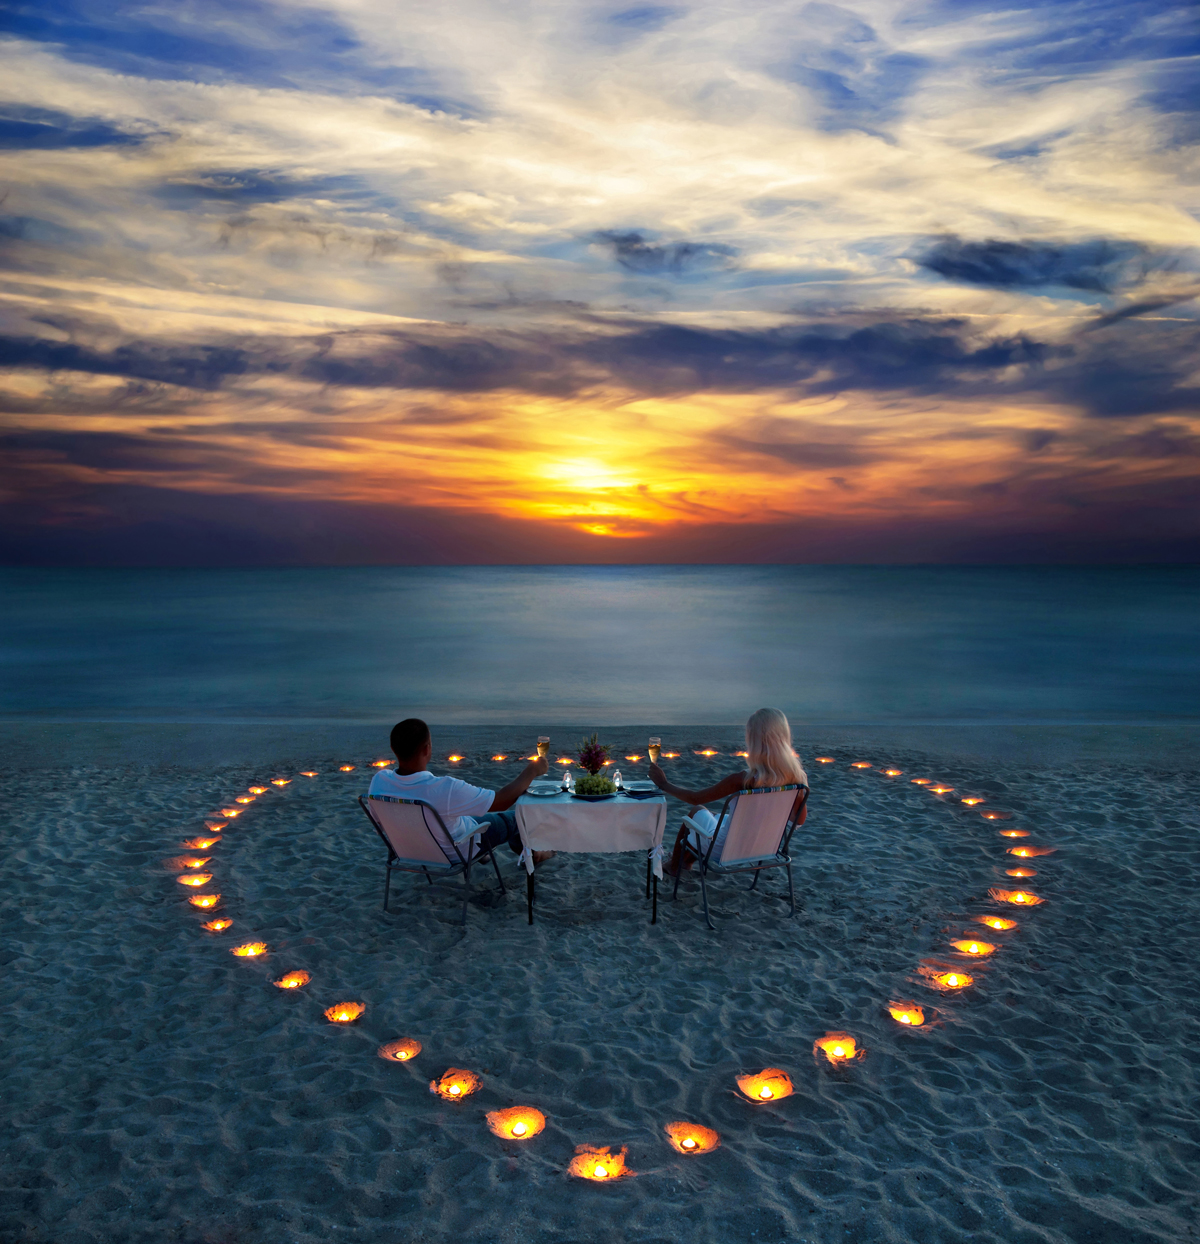 Light and love - happy valentines day